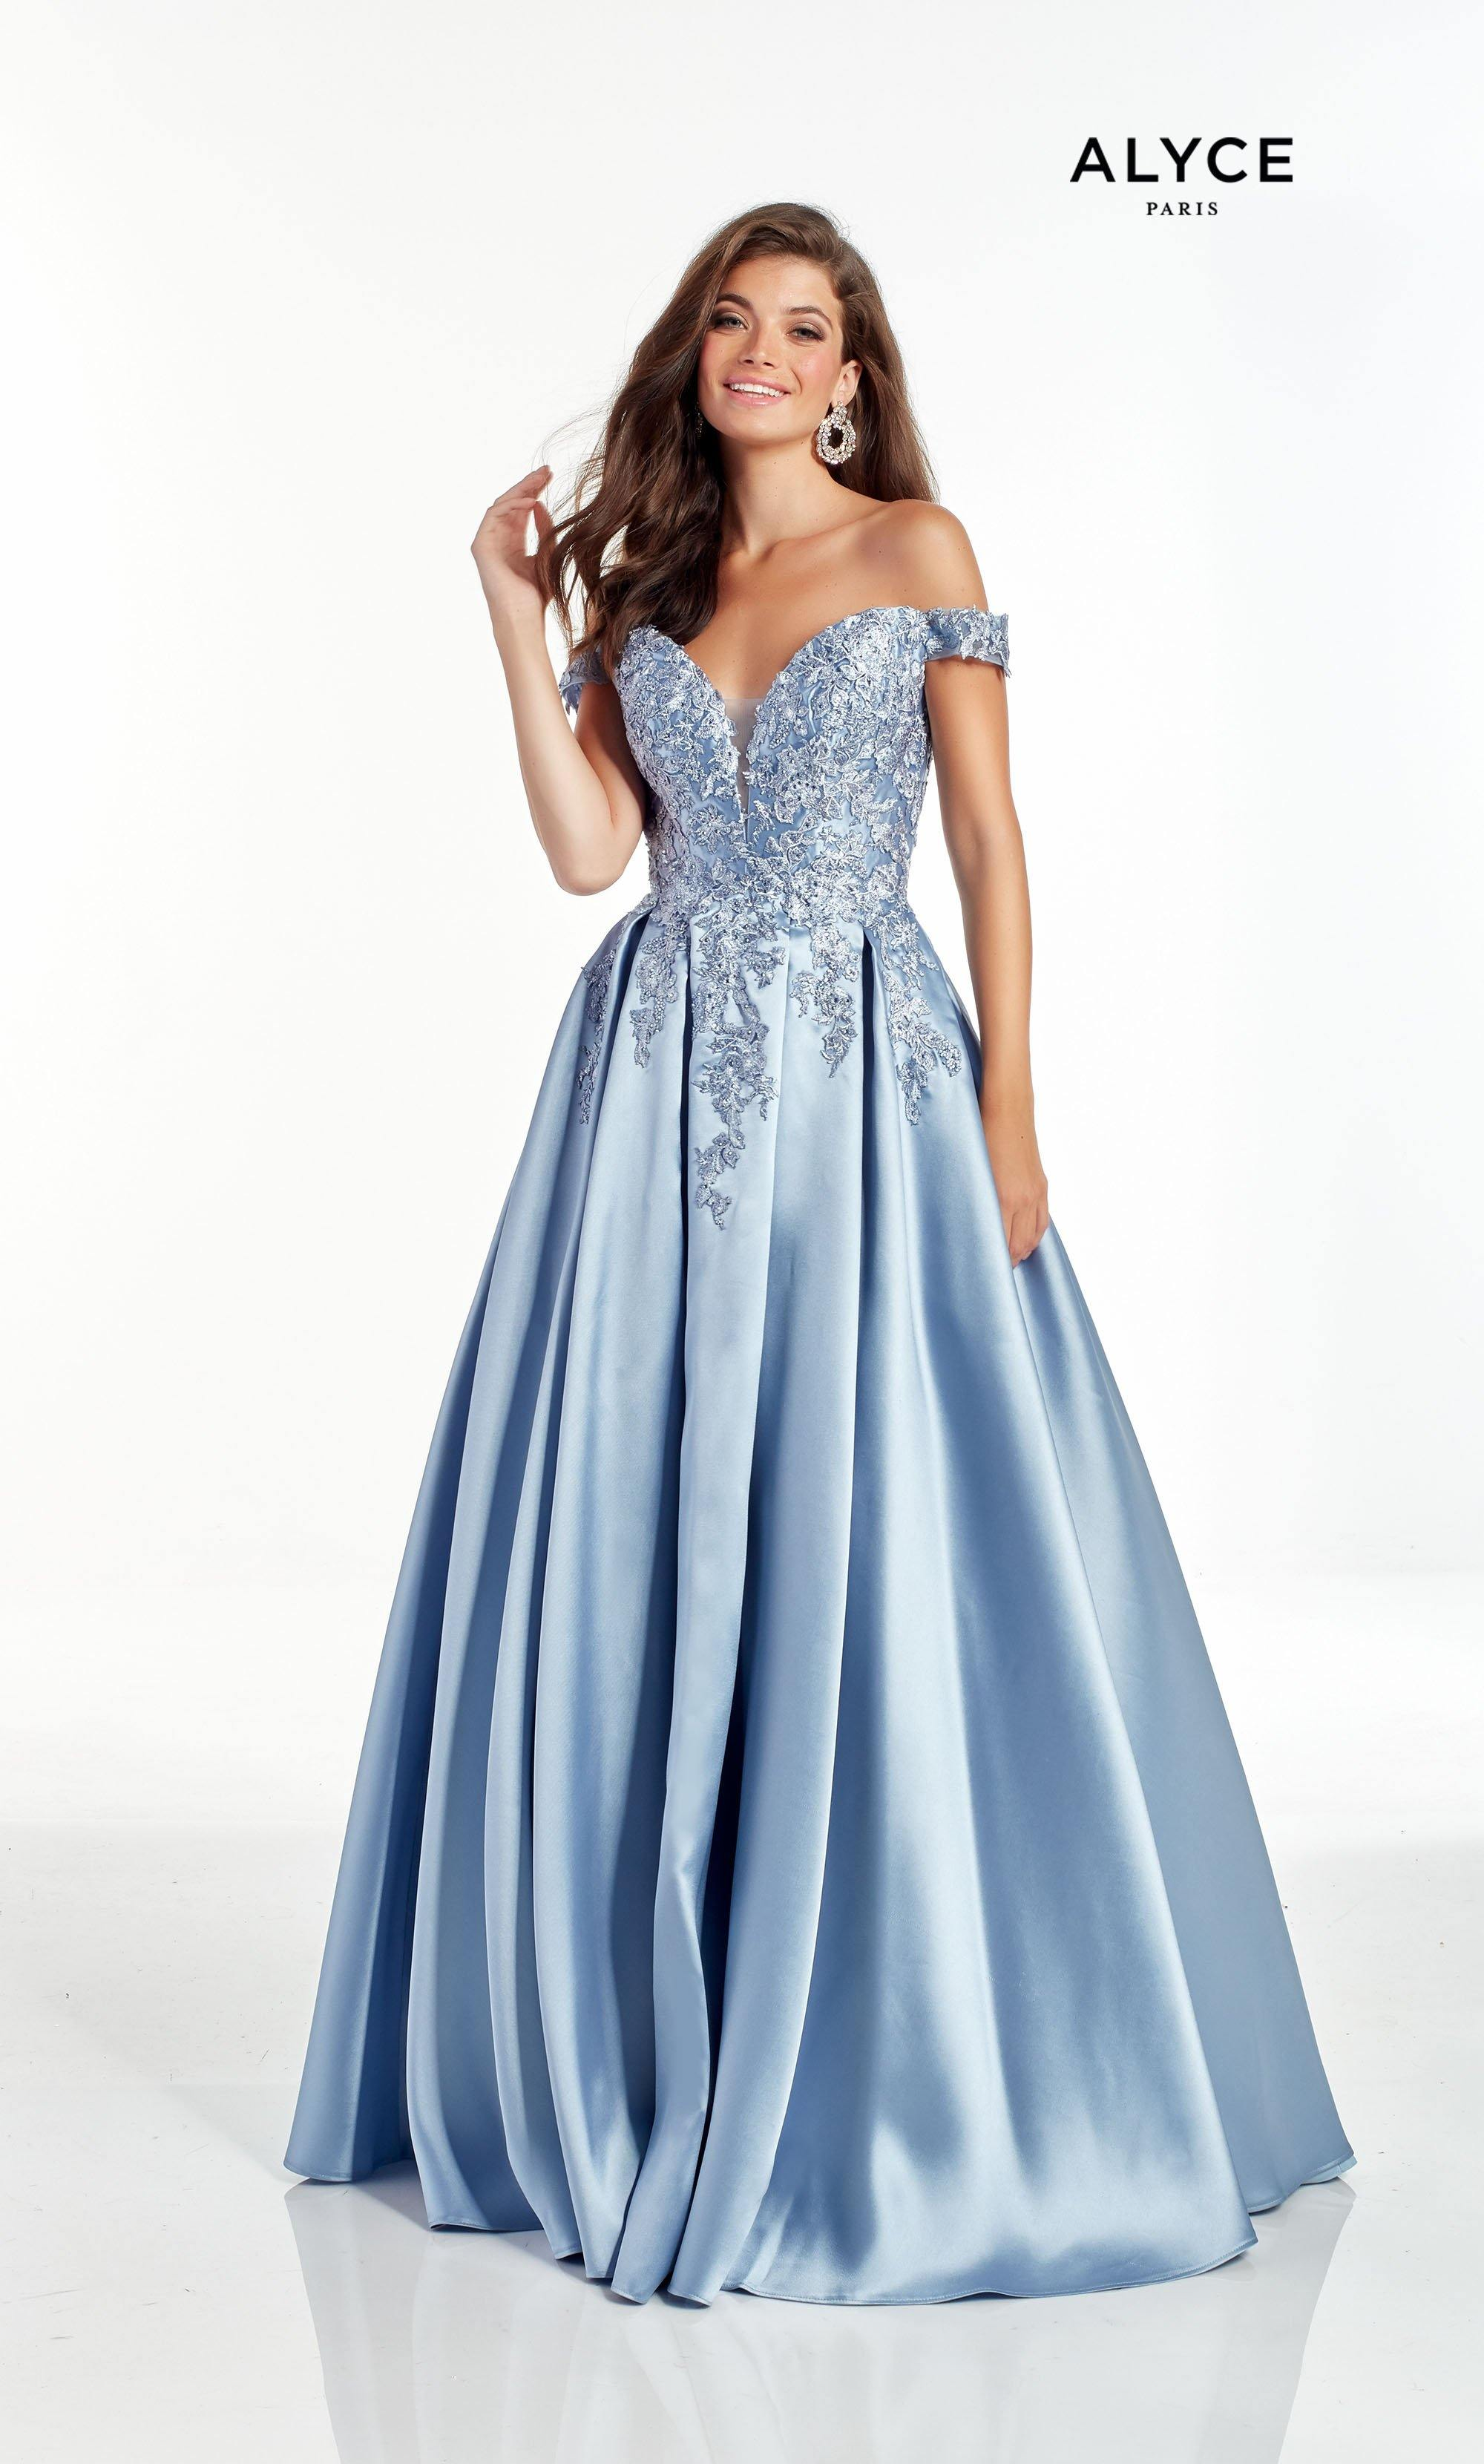 French Blue off the shoulder mikado ballgown with lace detail